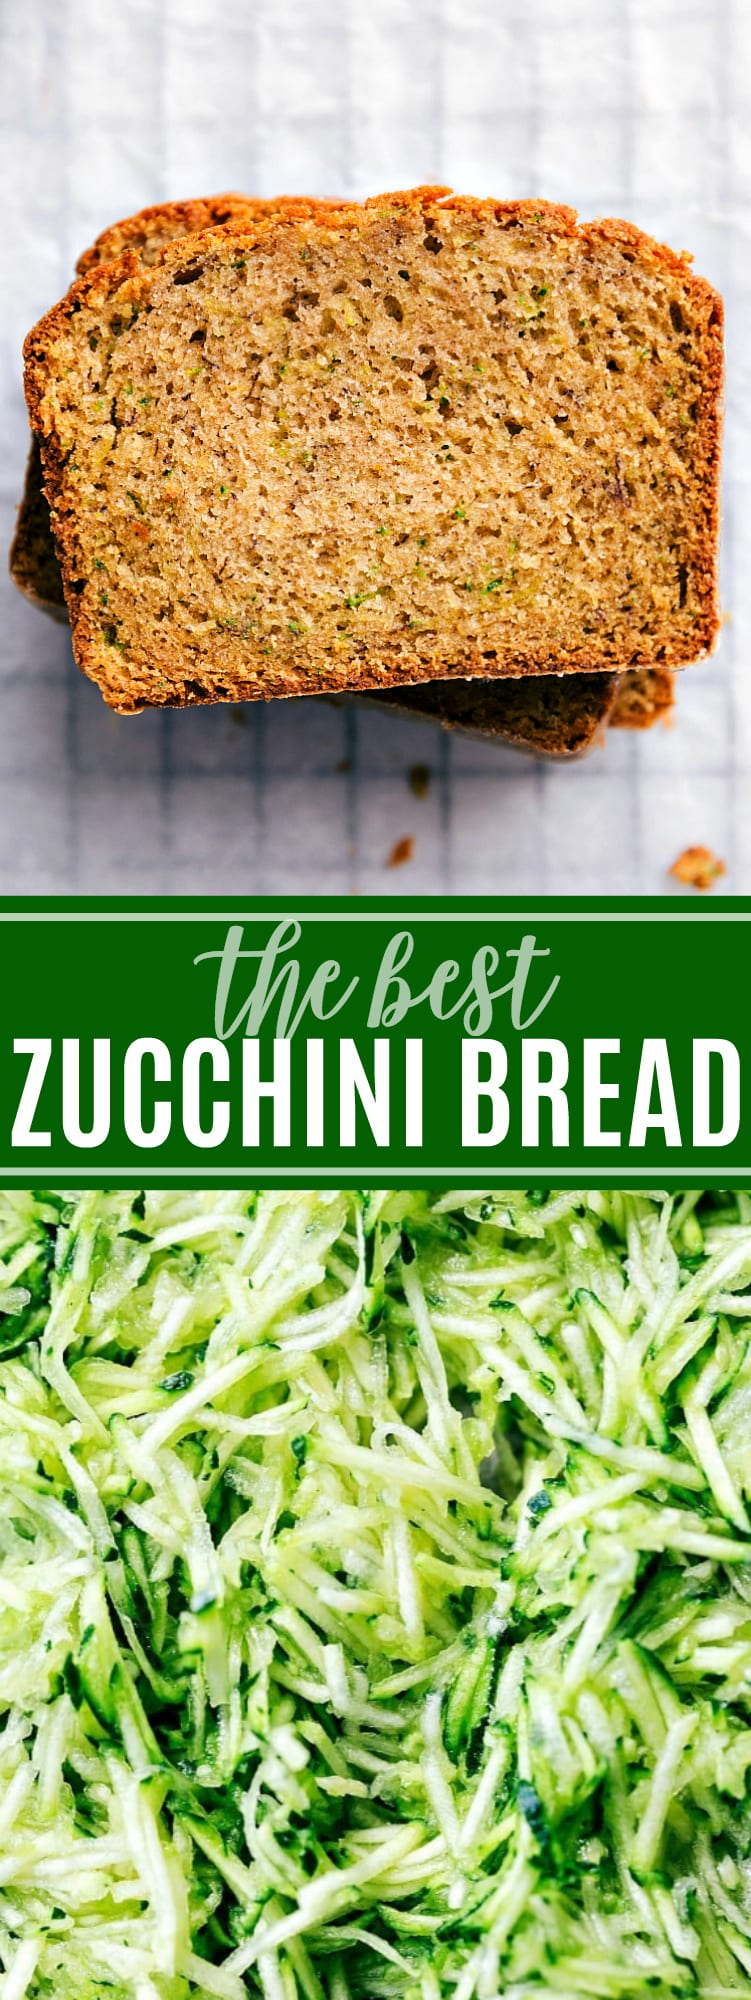 This zucchini bread was catered at my wedding and it was the FIRST treat to go with dozens of people asking for the recipe! Truly the best and so simple! via chelseasmessyapron.com #zucchini #bread #easy #quick #quickbread #dessert #treat #summer #garden